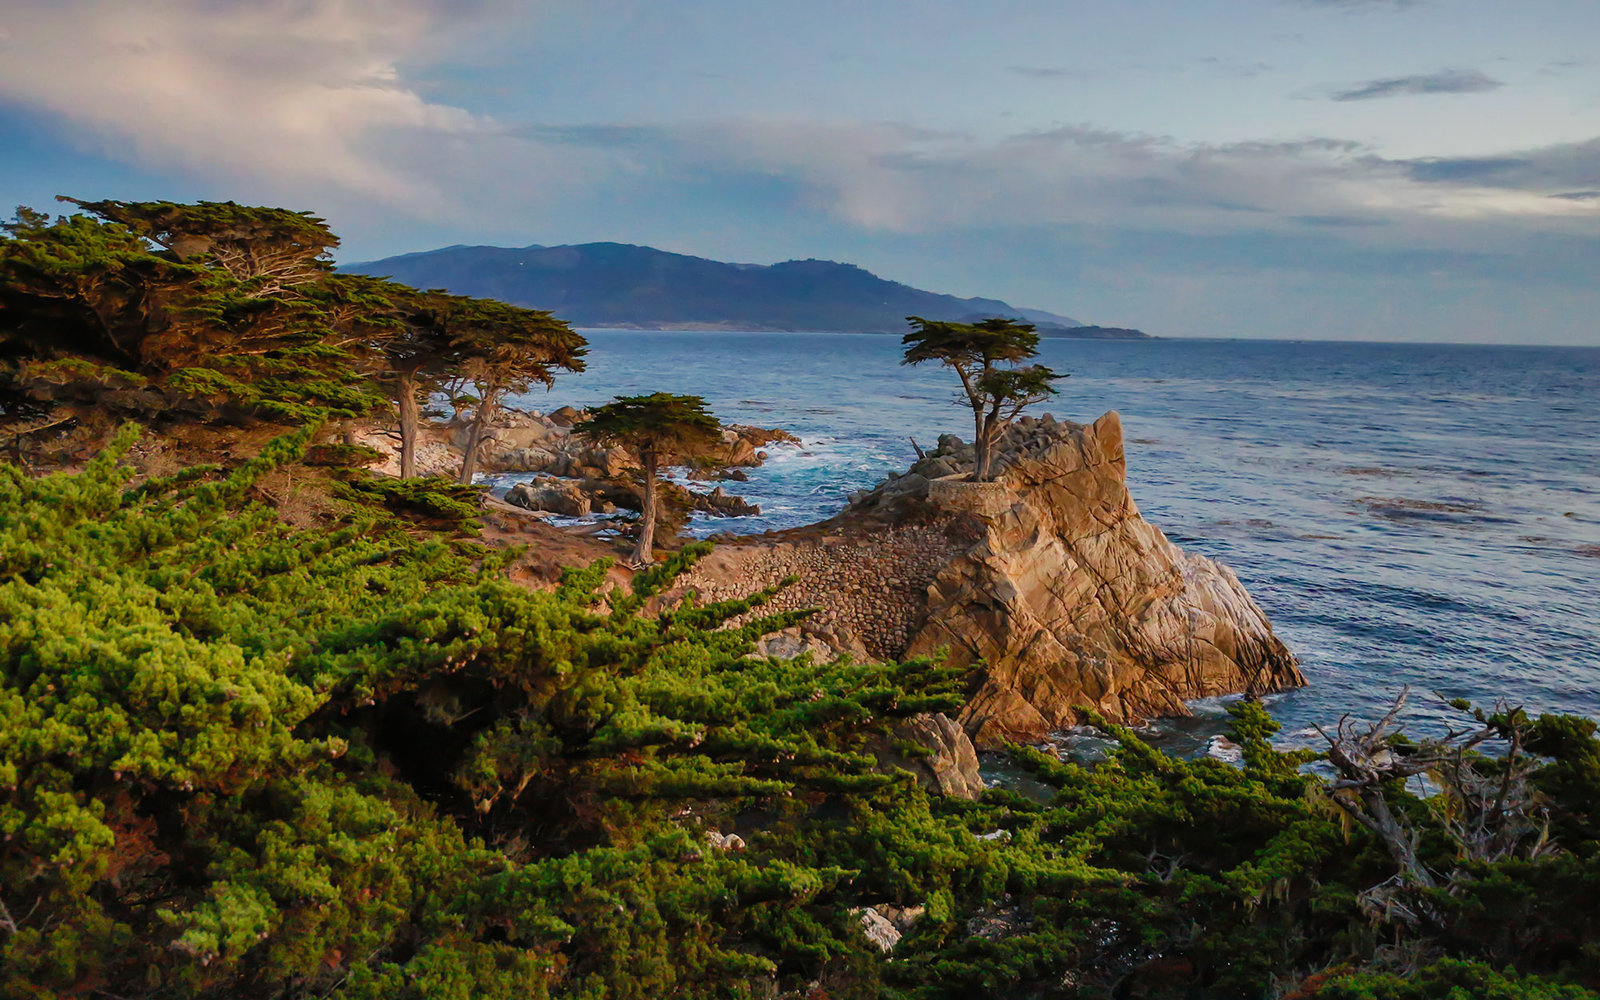 17-Mile Drive along the PCH in California